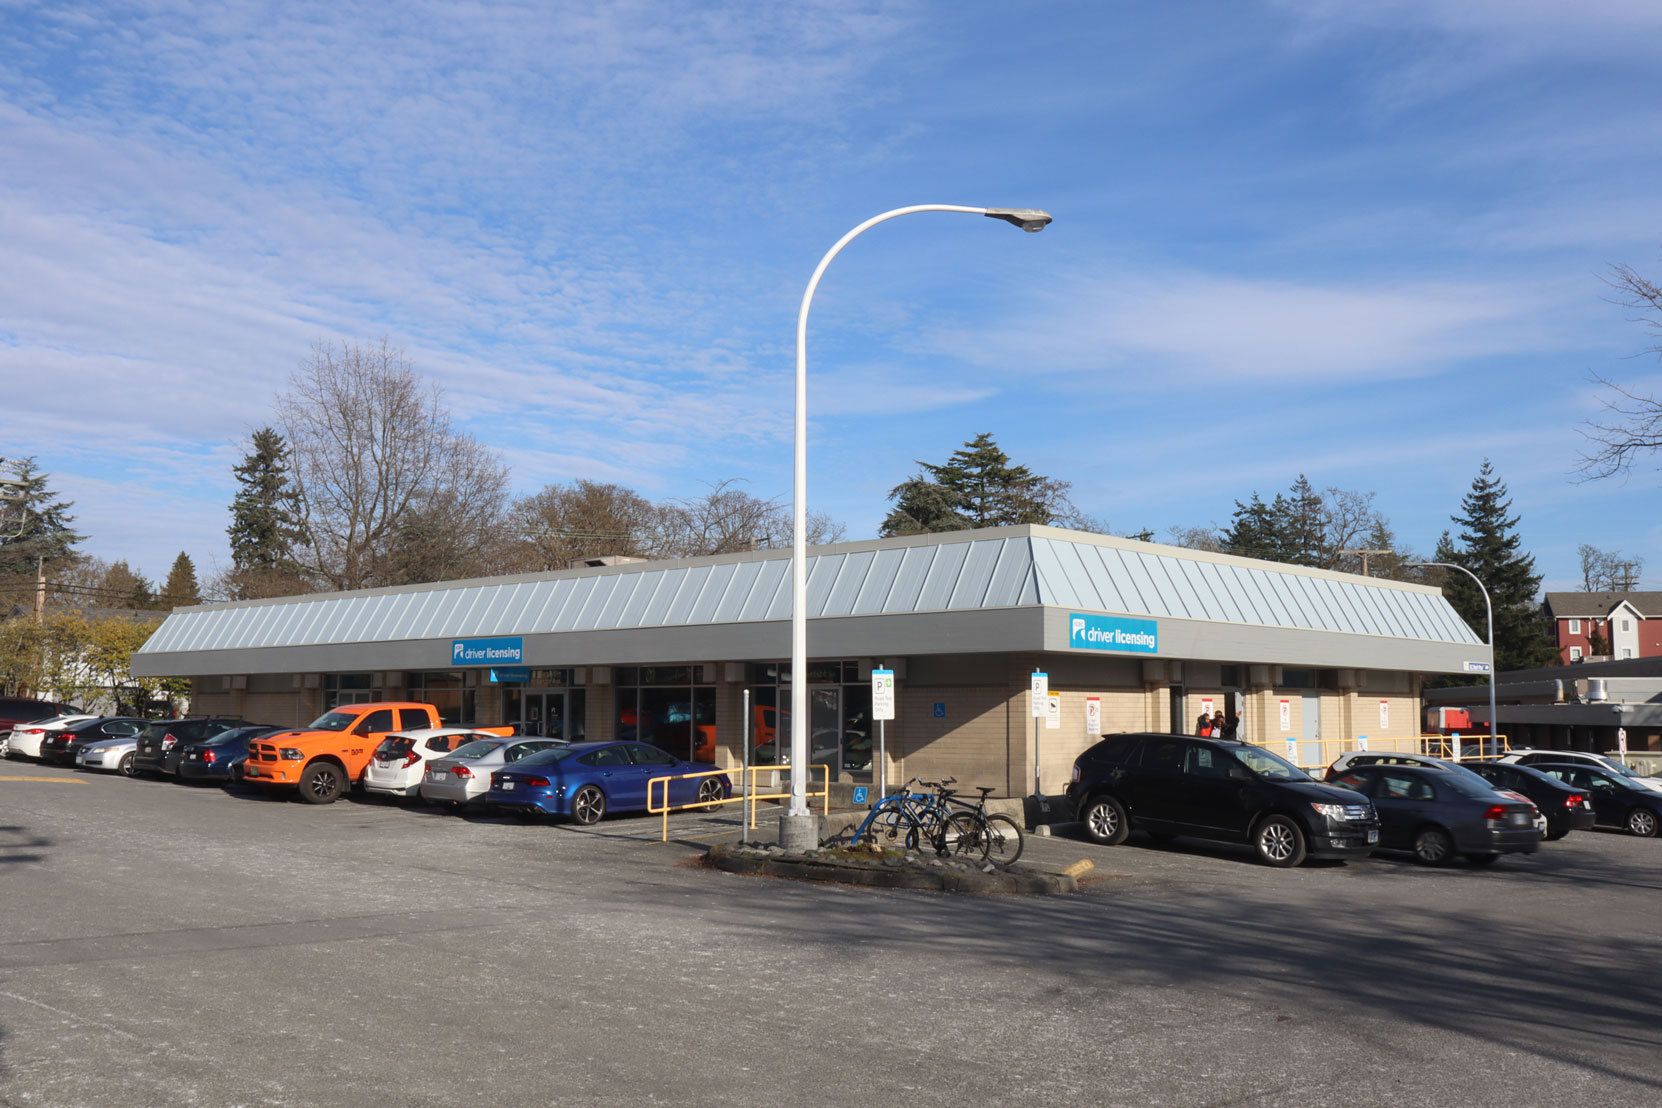 ICBC Driver Services, #1 1150 McKenzie Avenue, Victoria is one of the locations where Road Tests are held in Victoria (photo: West Coast Driver Training)